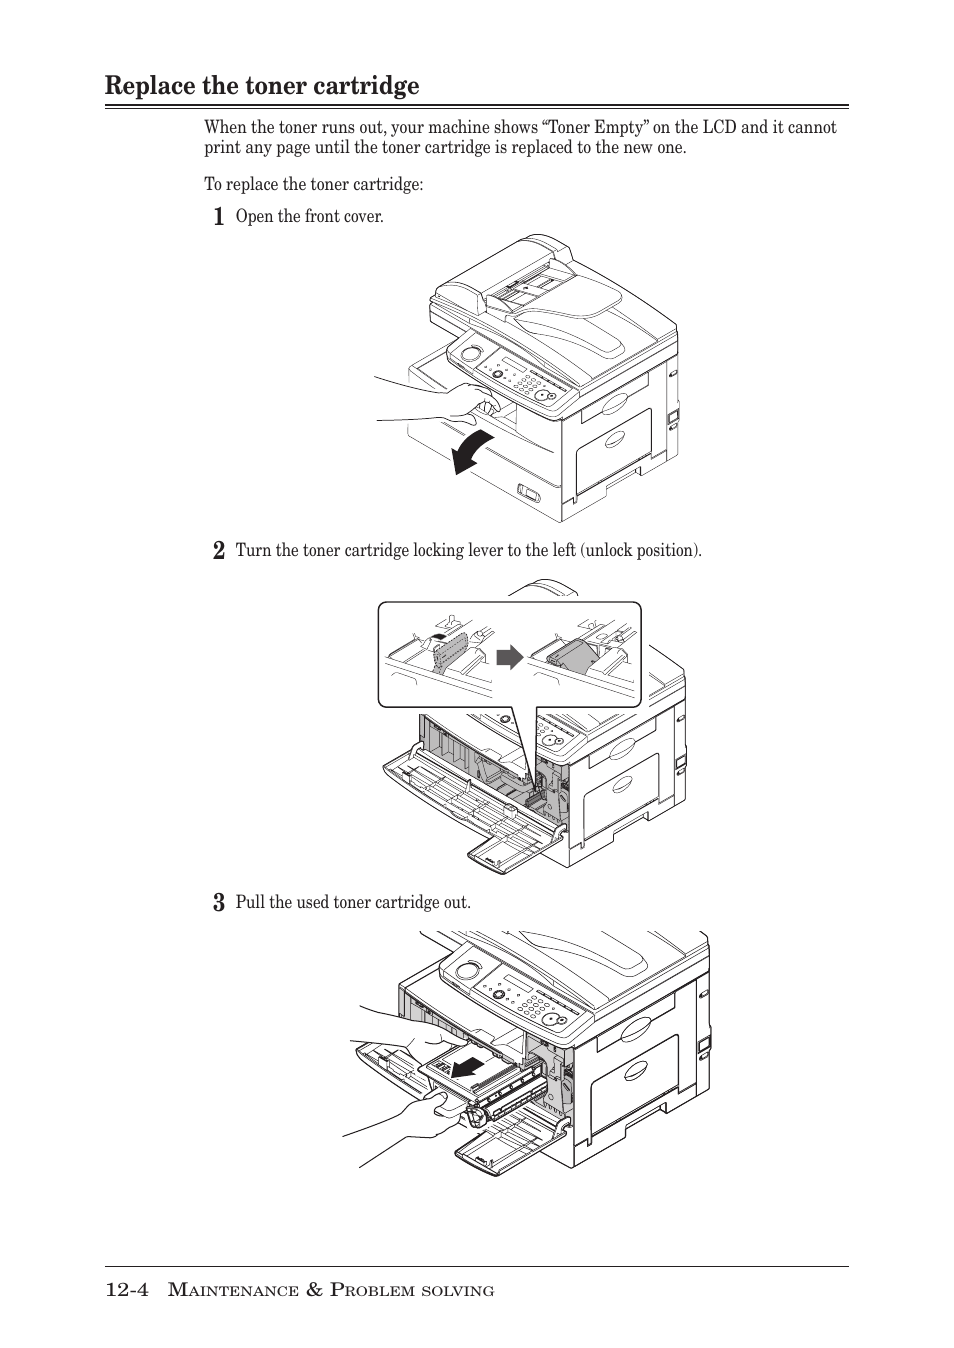 hight resolution of replace the toner cartridge replace the toner cartridge 4 muratec mfx 1950 user manual page 168 198